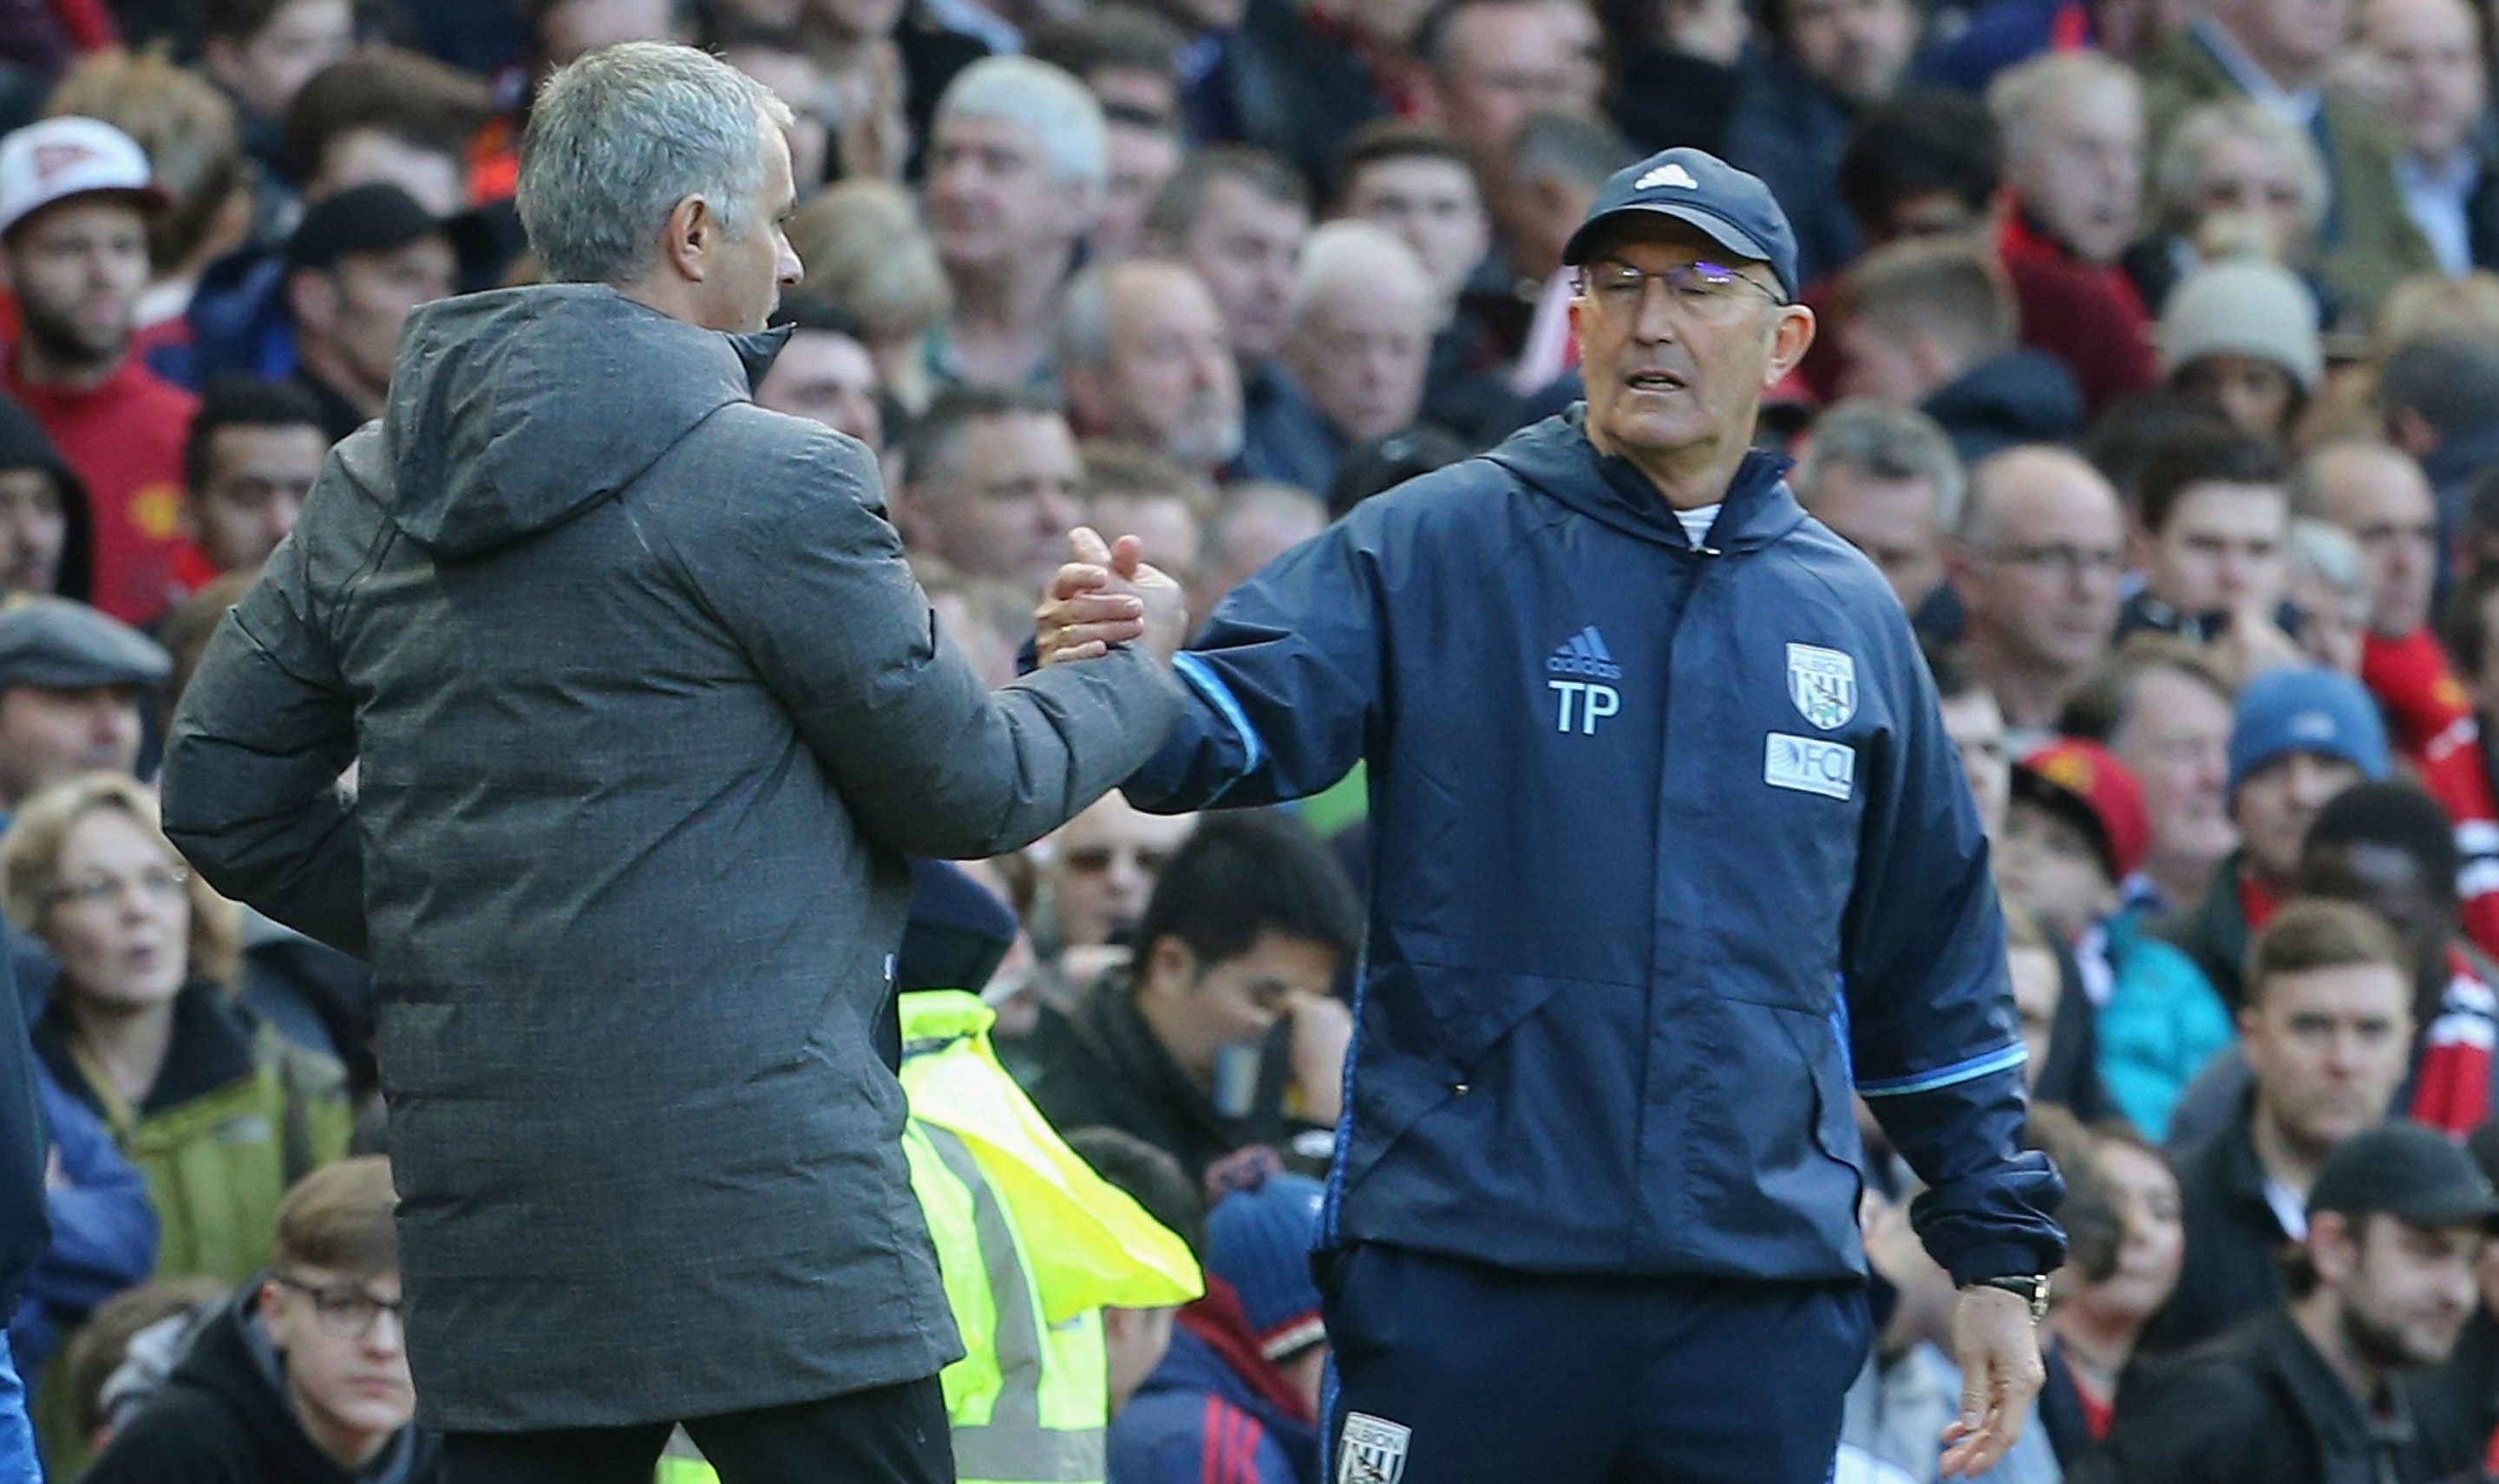 Manchester United fans report Tony Pulis to the FA for throwing water bottle during West Brom clash